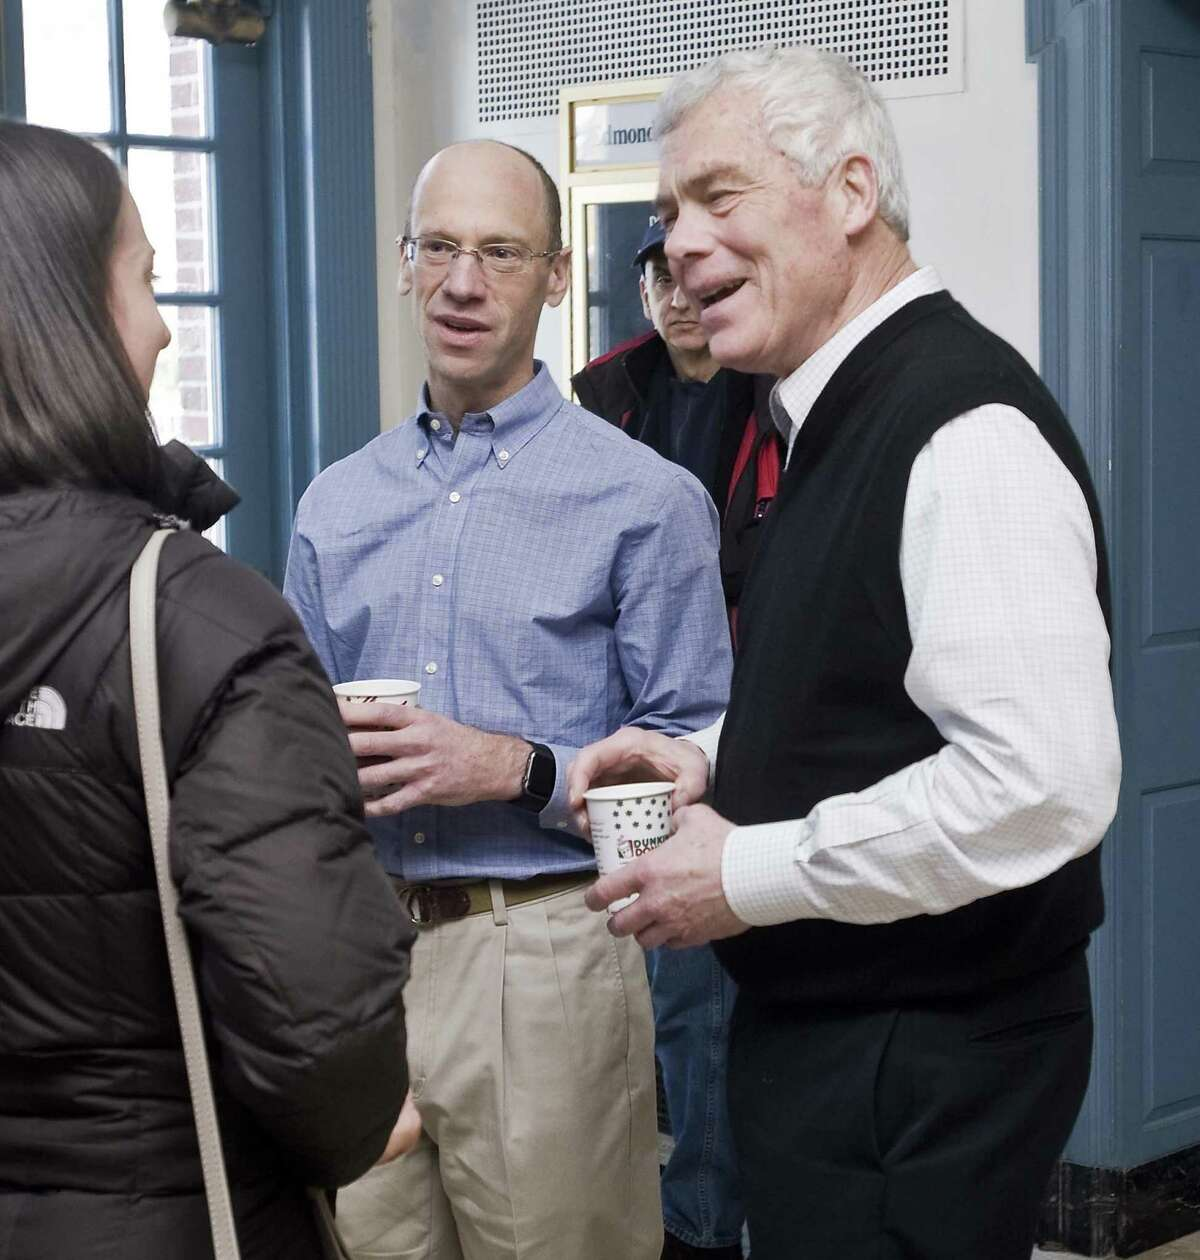 Monte Frank and Oz Griebel, a team running on the Independent ticket for Lieutenant Governor and Governor, chat with folks attending their Press Conference at Edmond Town Hall in Newtown. Saturday, Jan. 6, 2018